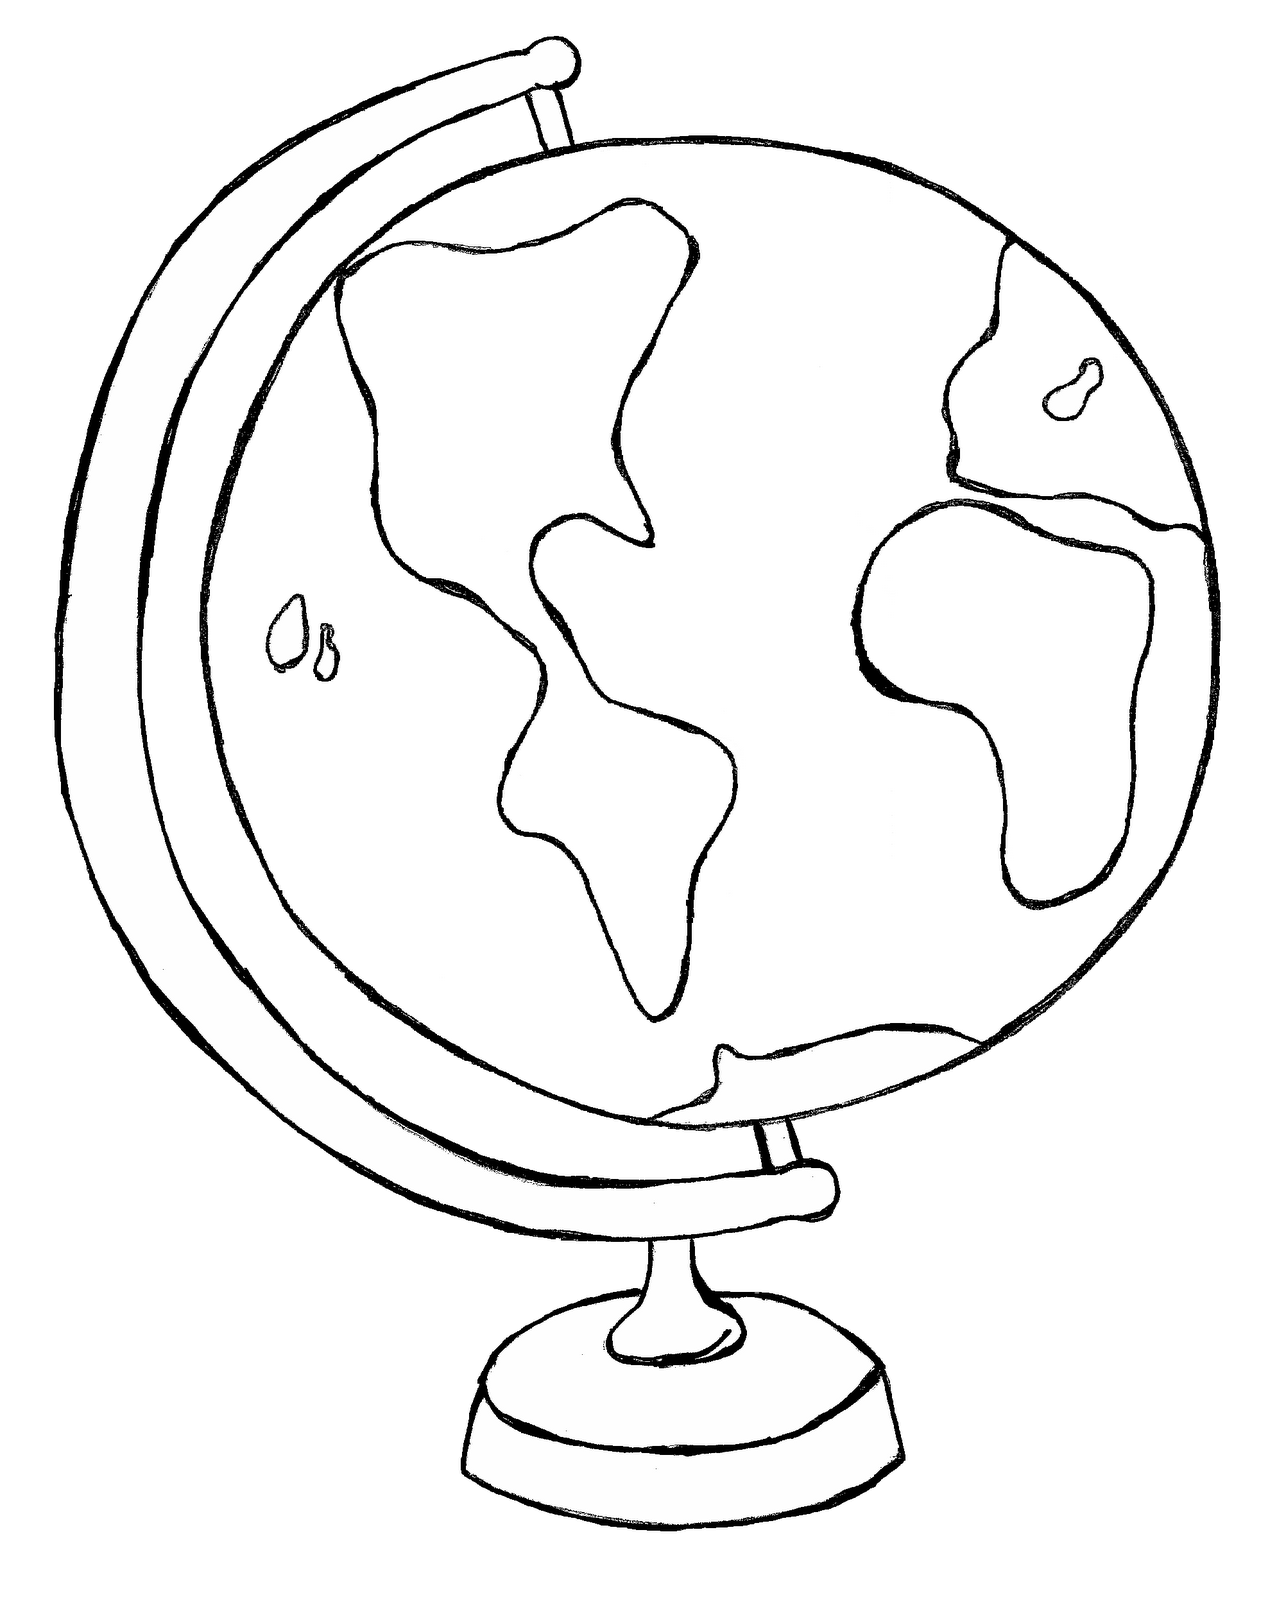 globe-clipart-black-and-white-ncBG8pAcA pngWorld Clipart Black And White